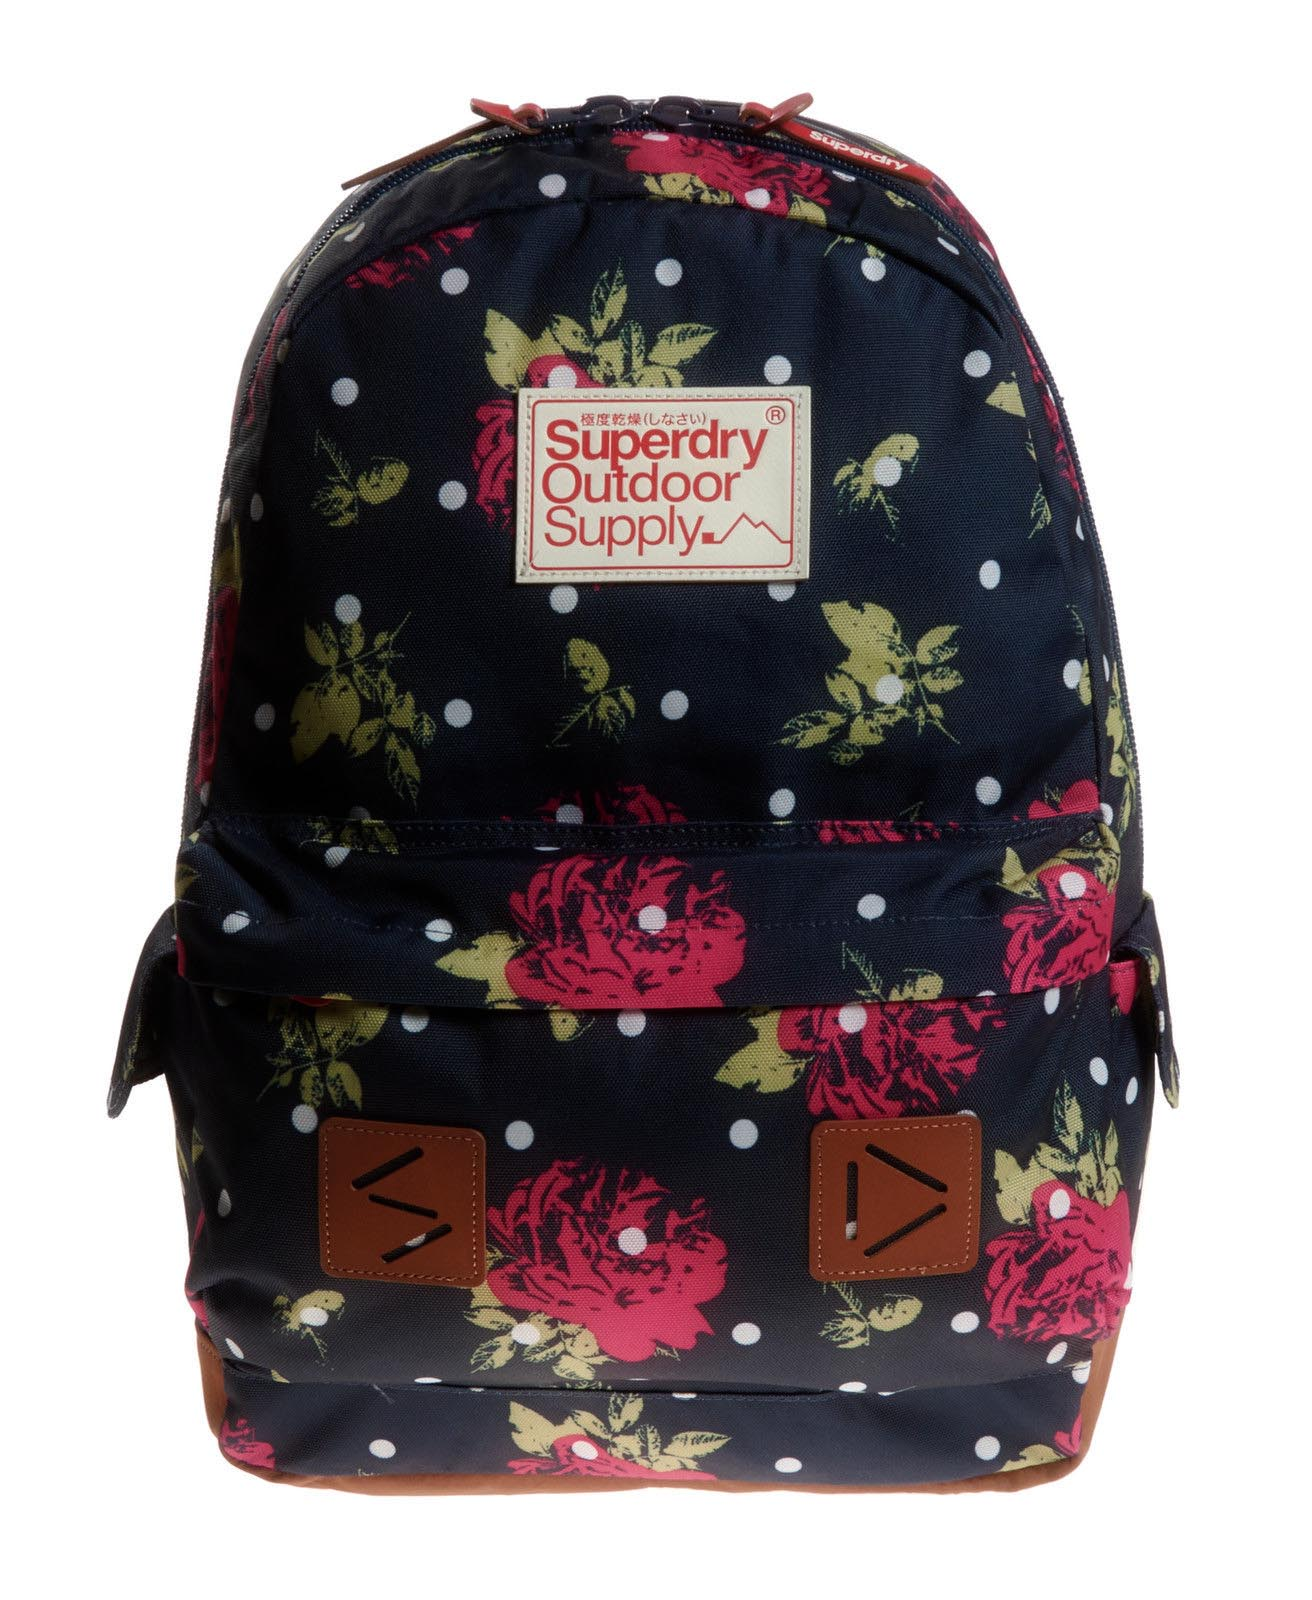 superdry-bags-on-sale-10